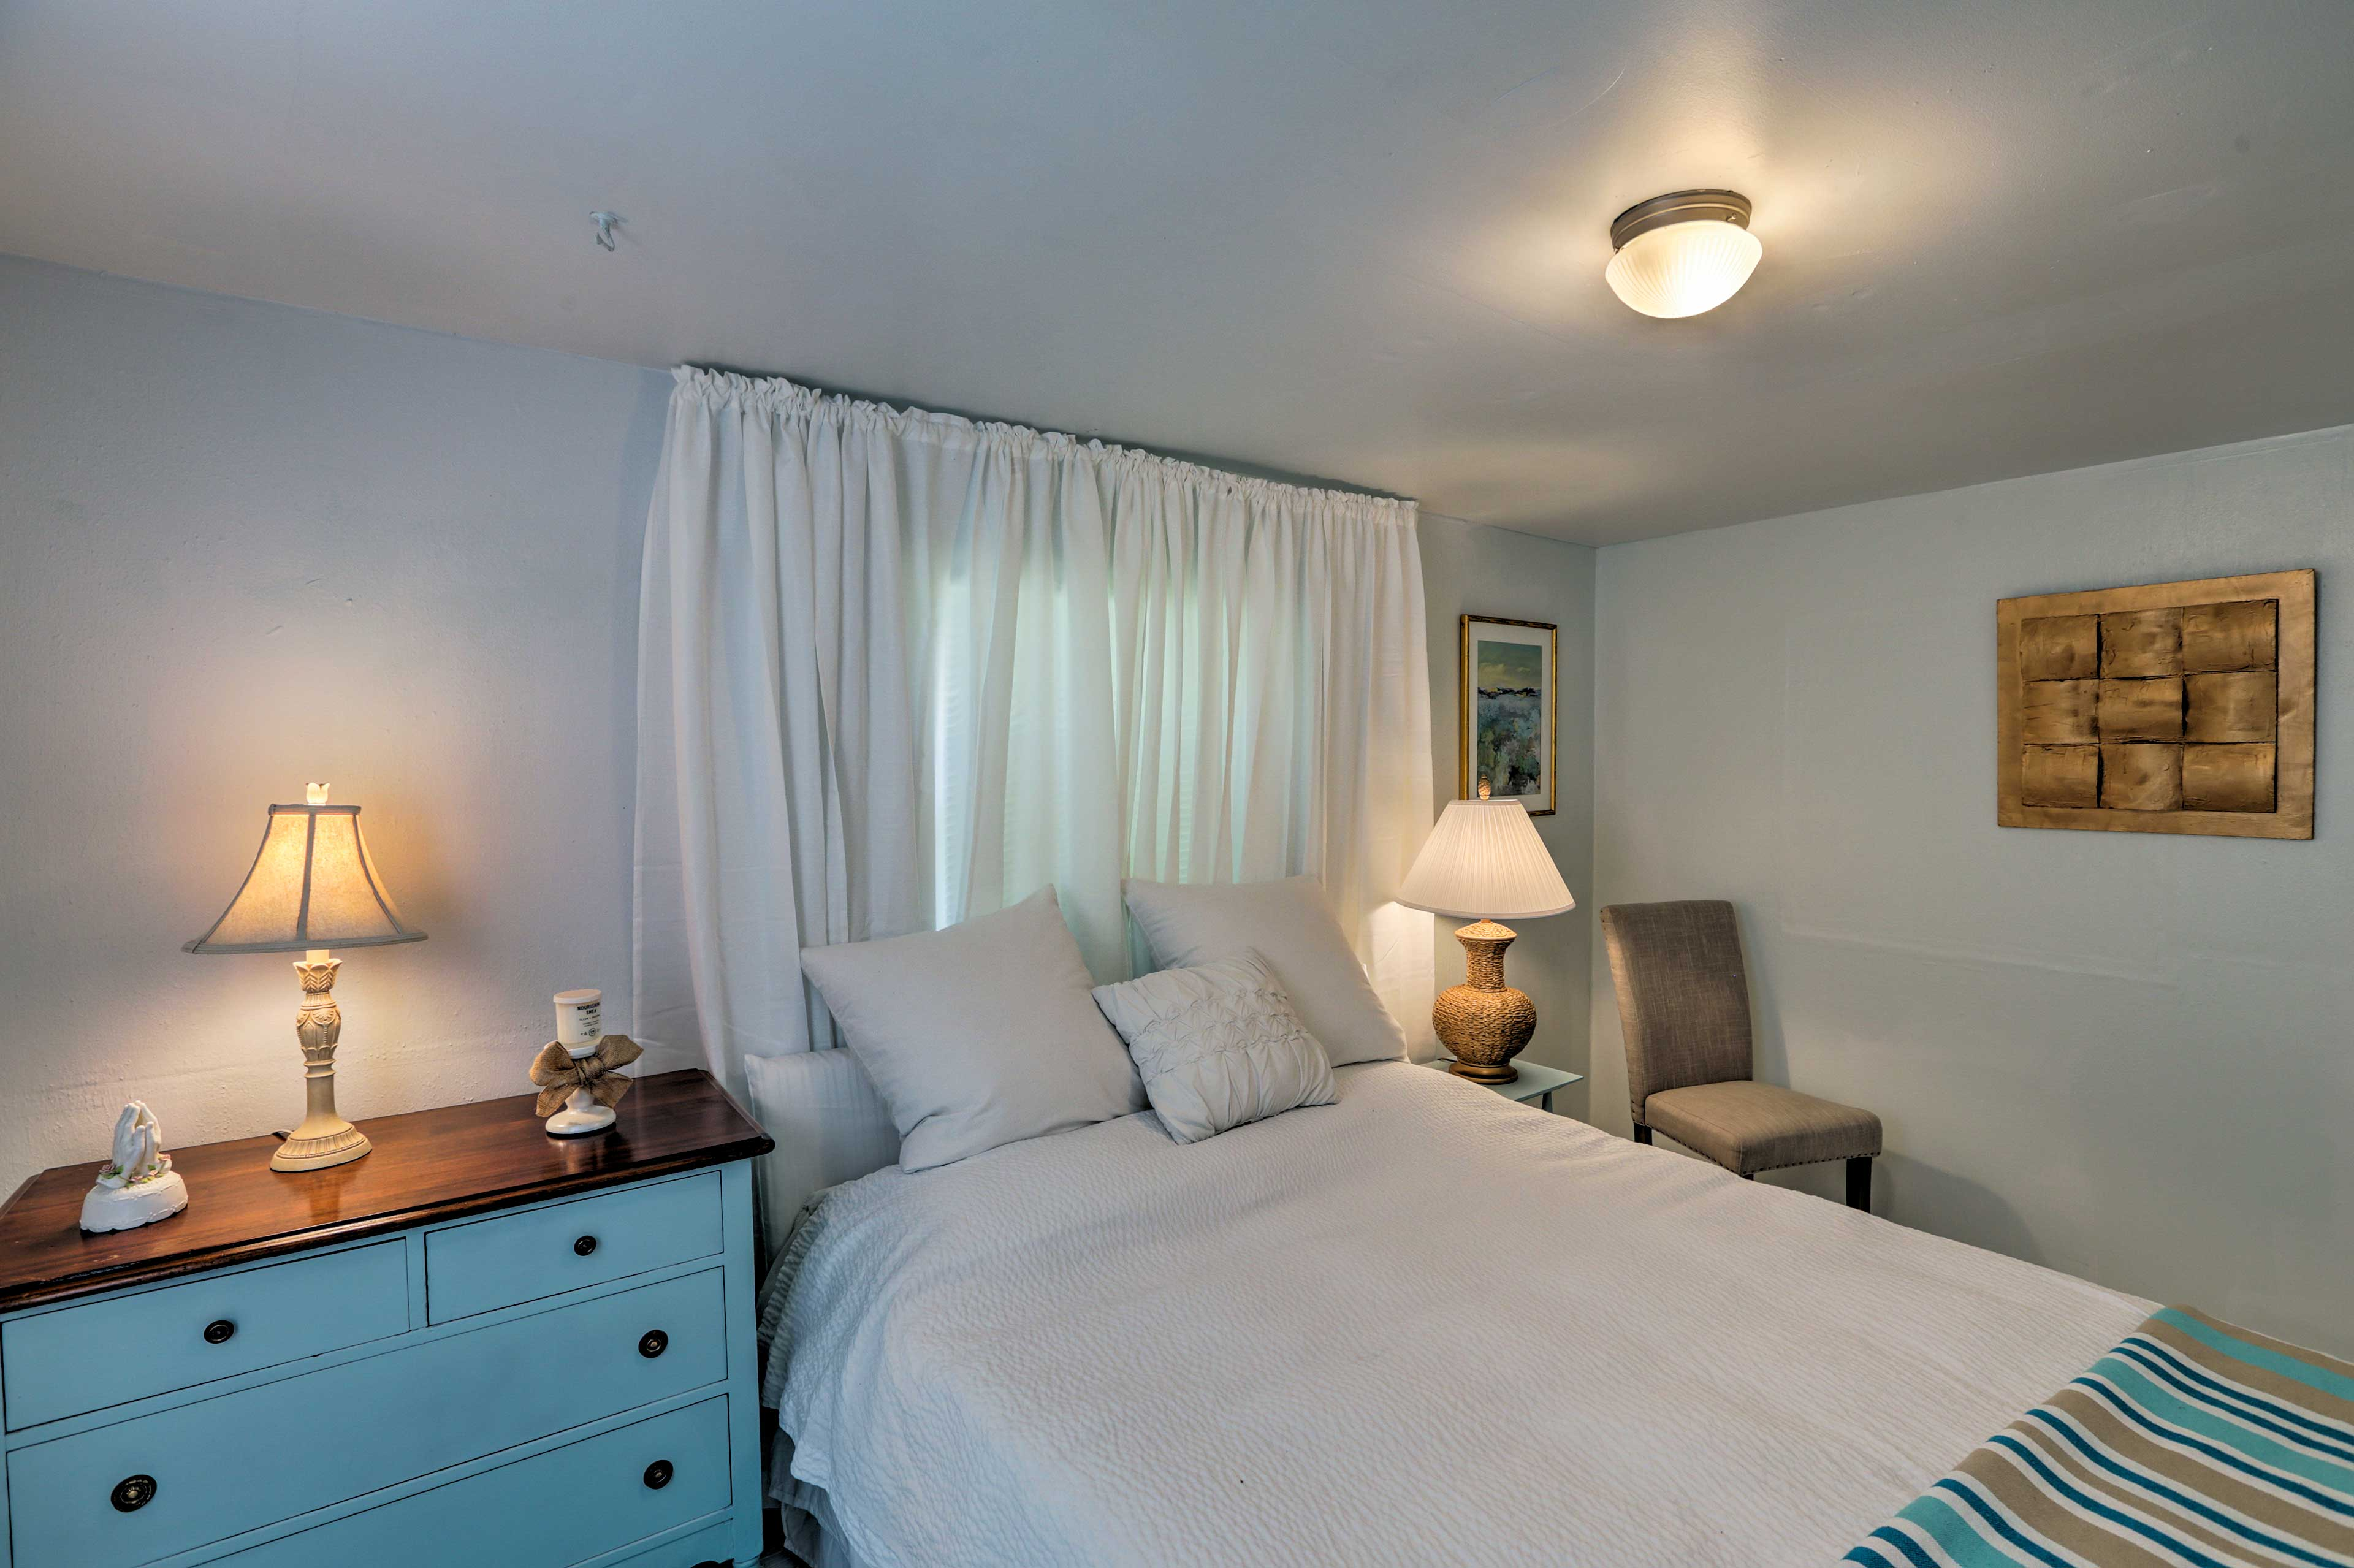 You and your loved one can cuddle up on the queen bed.